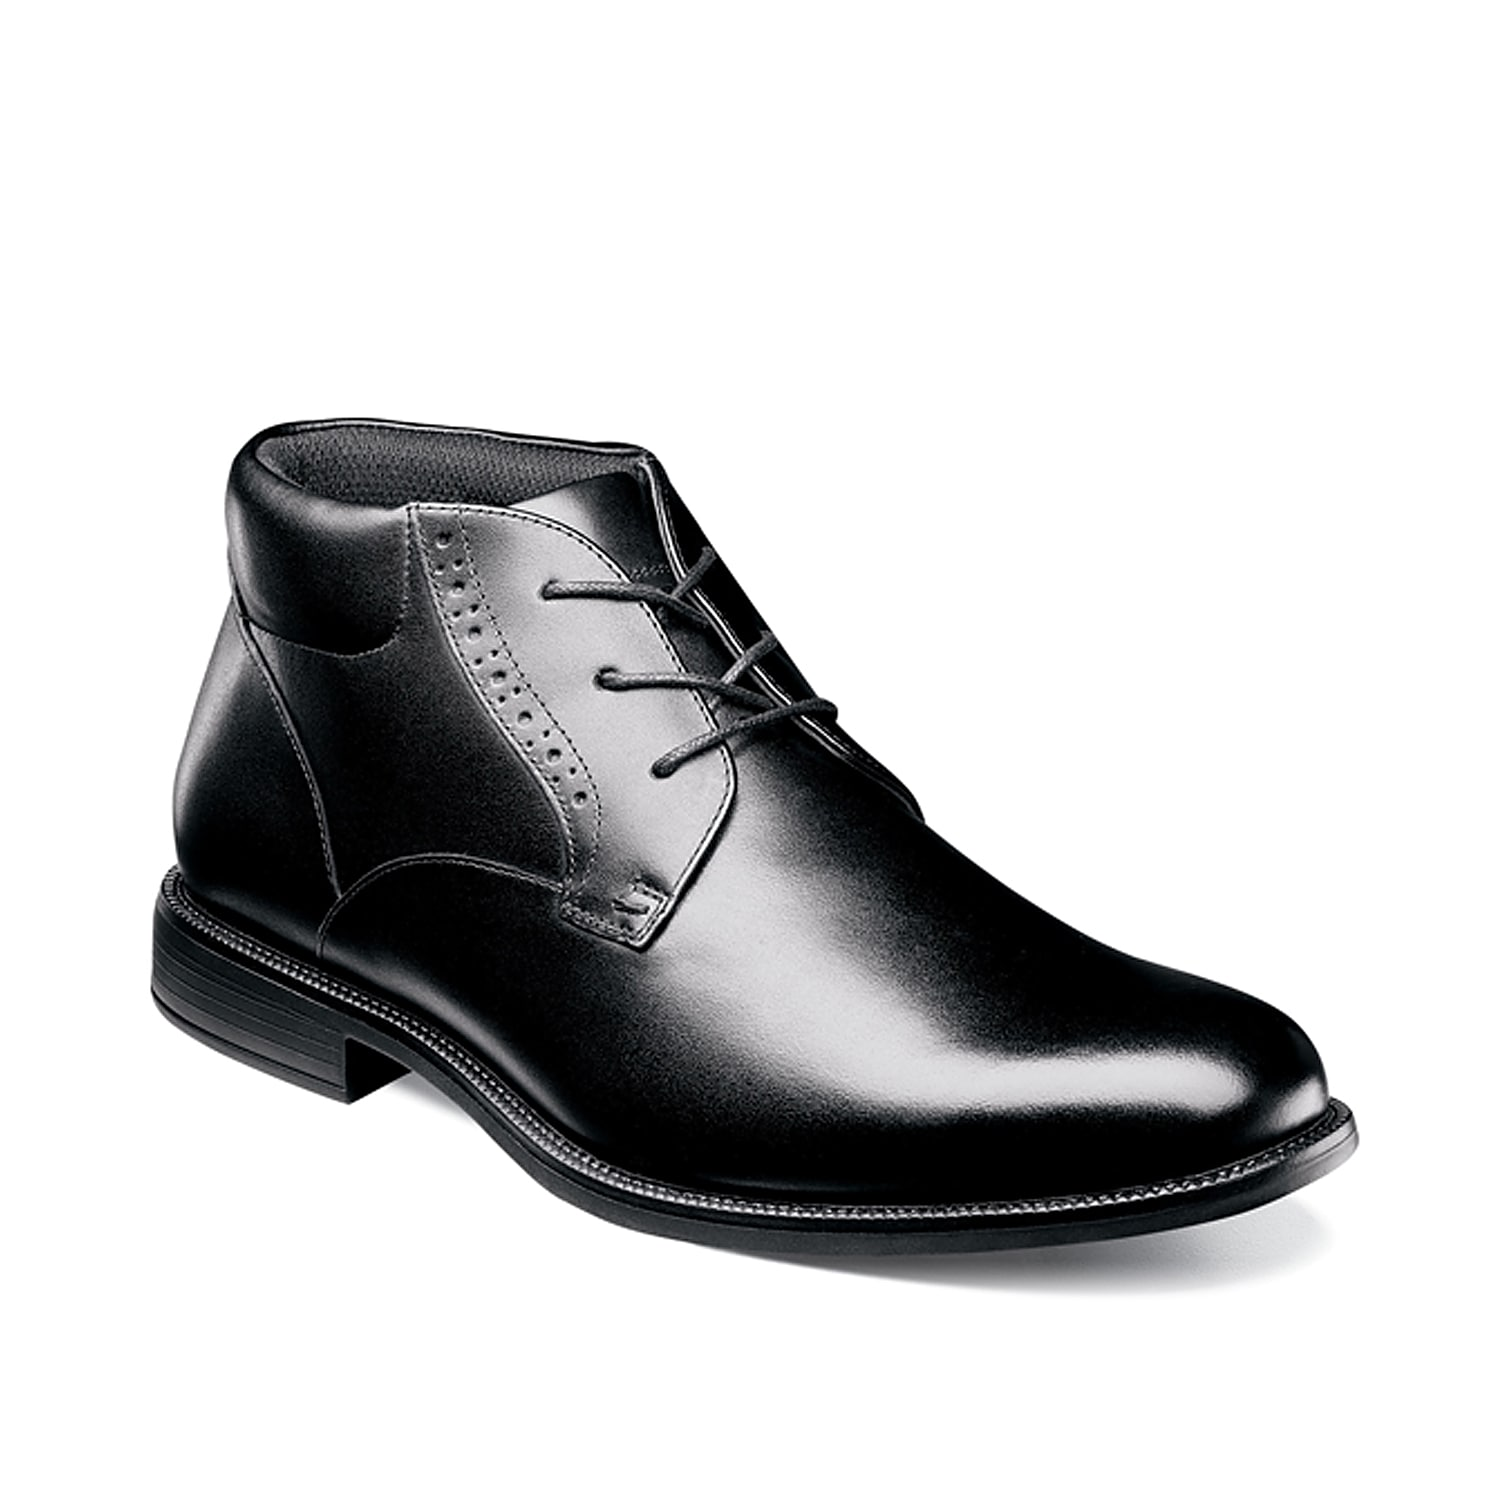 Feel nothing less than dapper when wearing the Nantucket chukka boot from Nunn Bush. This lace-up features a waterproof leather construction and an anti-slip rubber sole that will be great for all weather traction.